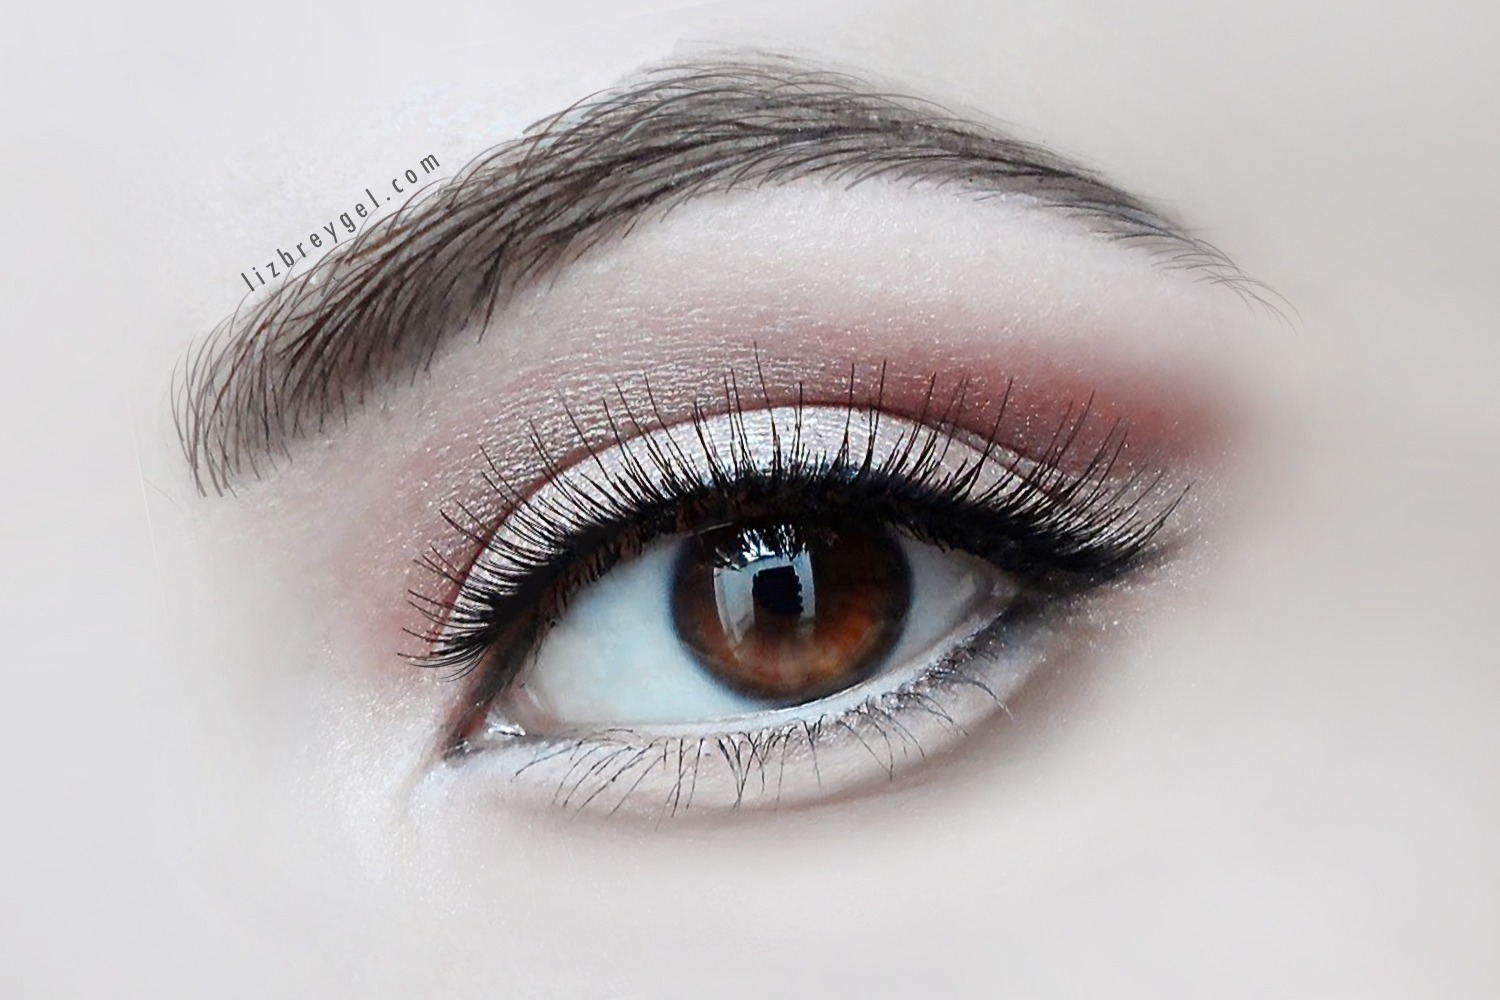 Innocent & Cute Eyes | Tear Bag Eye Makeup by Liz Breygel on Janaury Girl blog